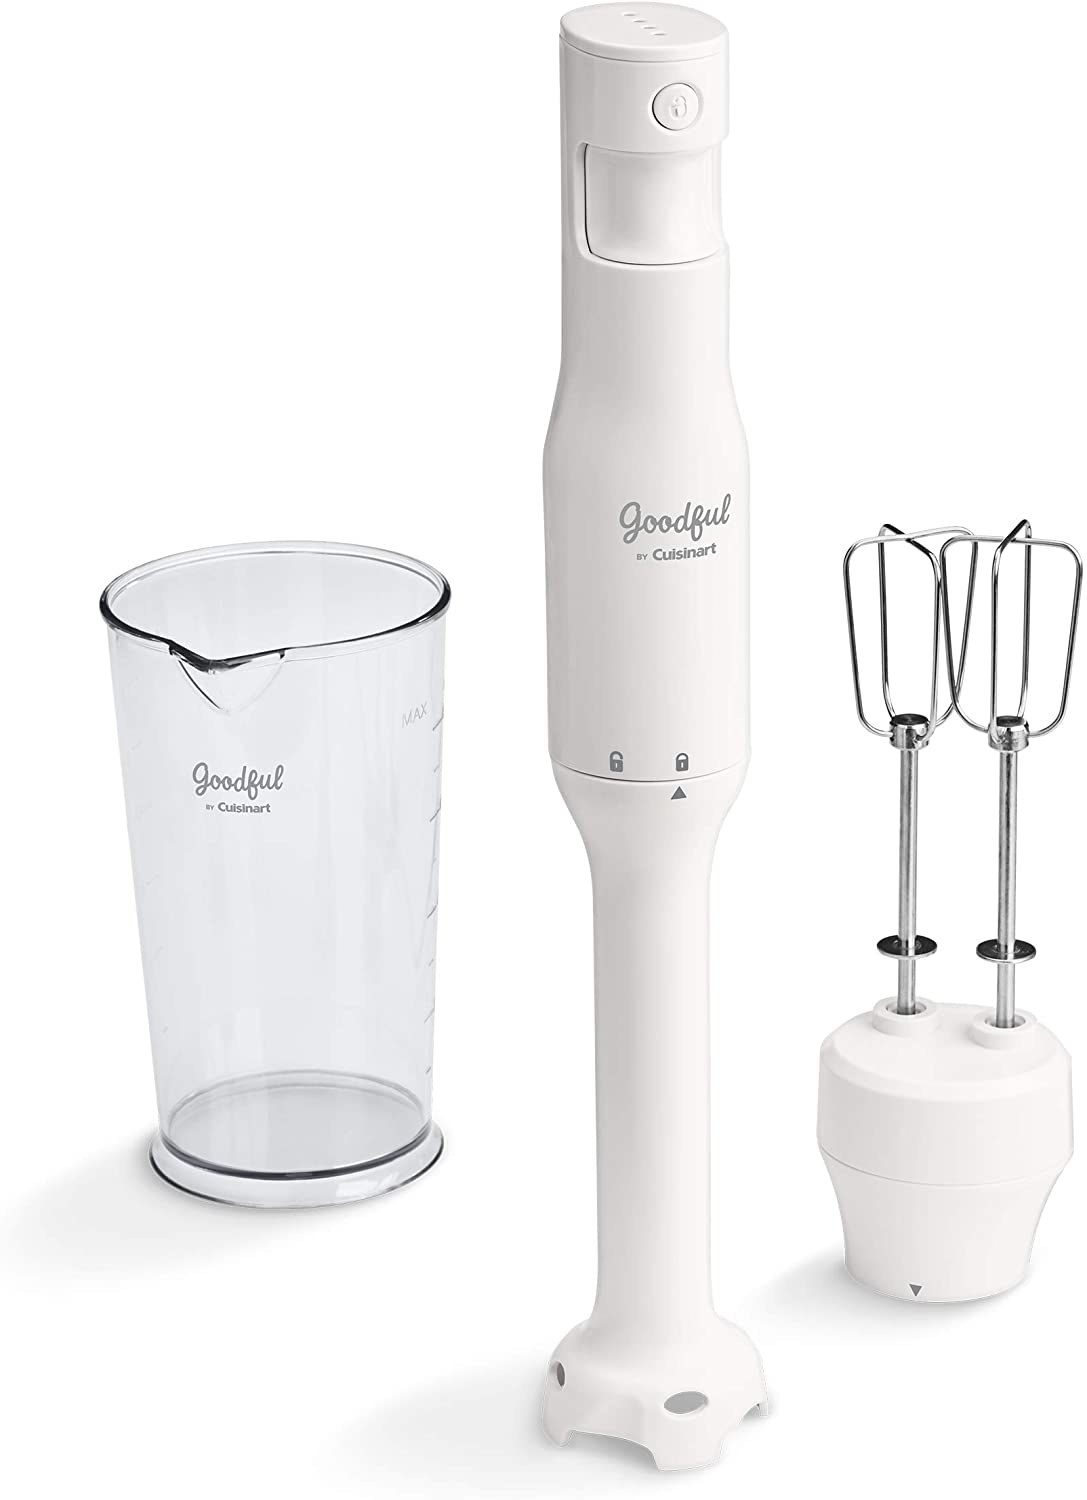 a white stick blender, blending cup, and attachable beaters